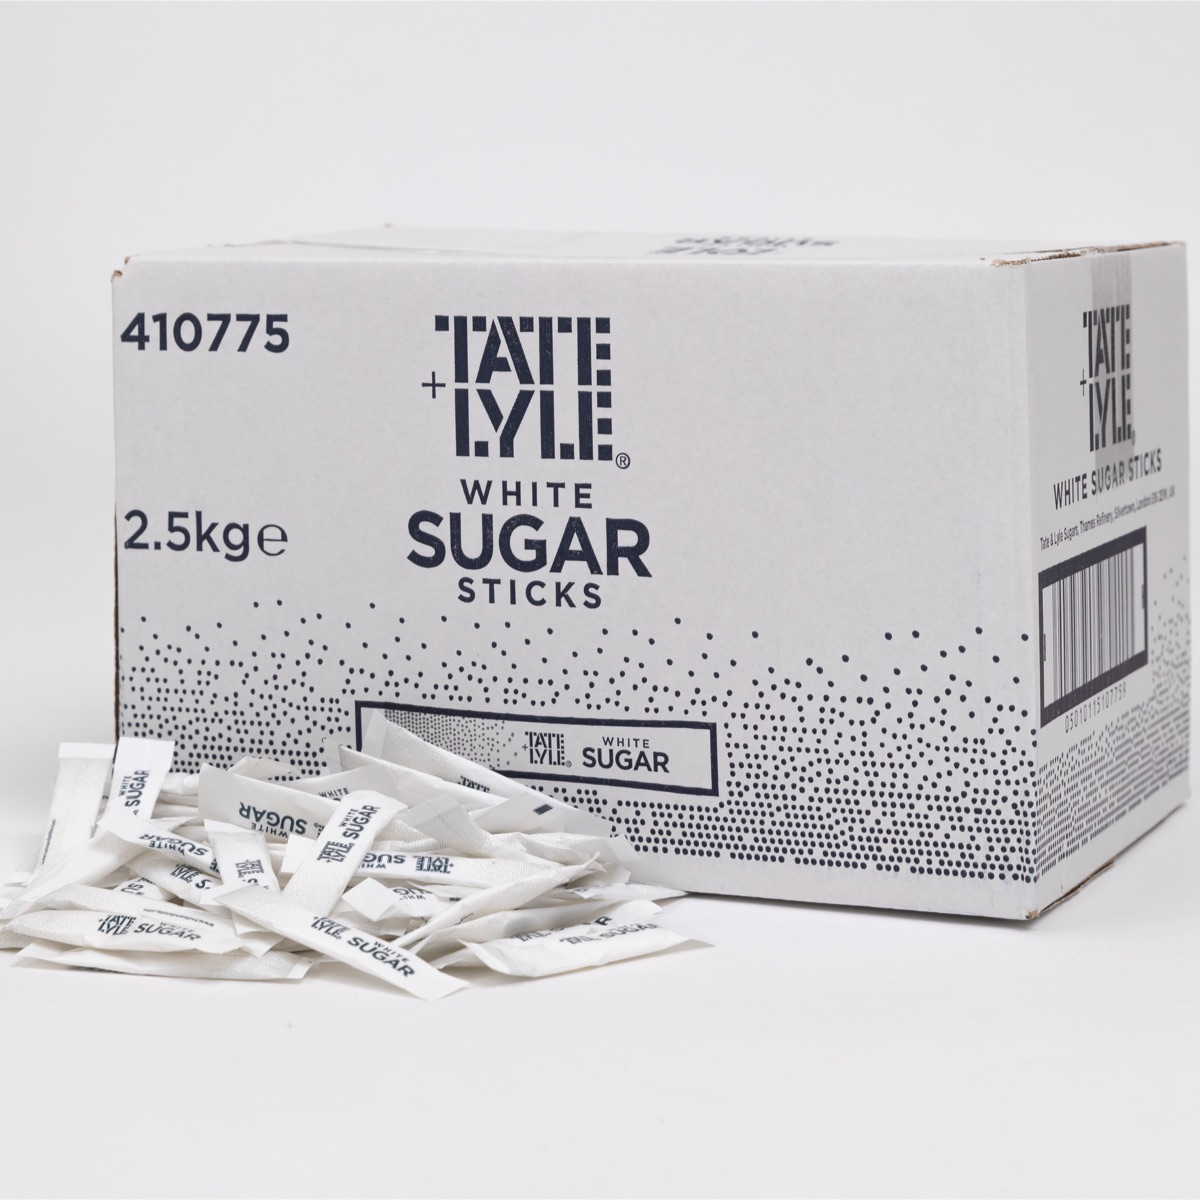 White Sugar Sticks – 2.5kg